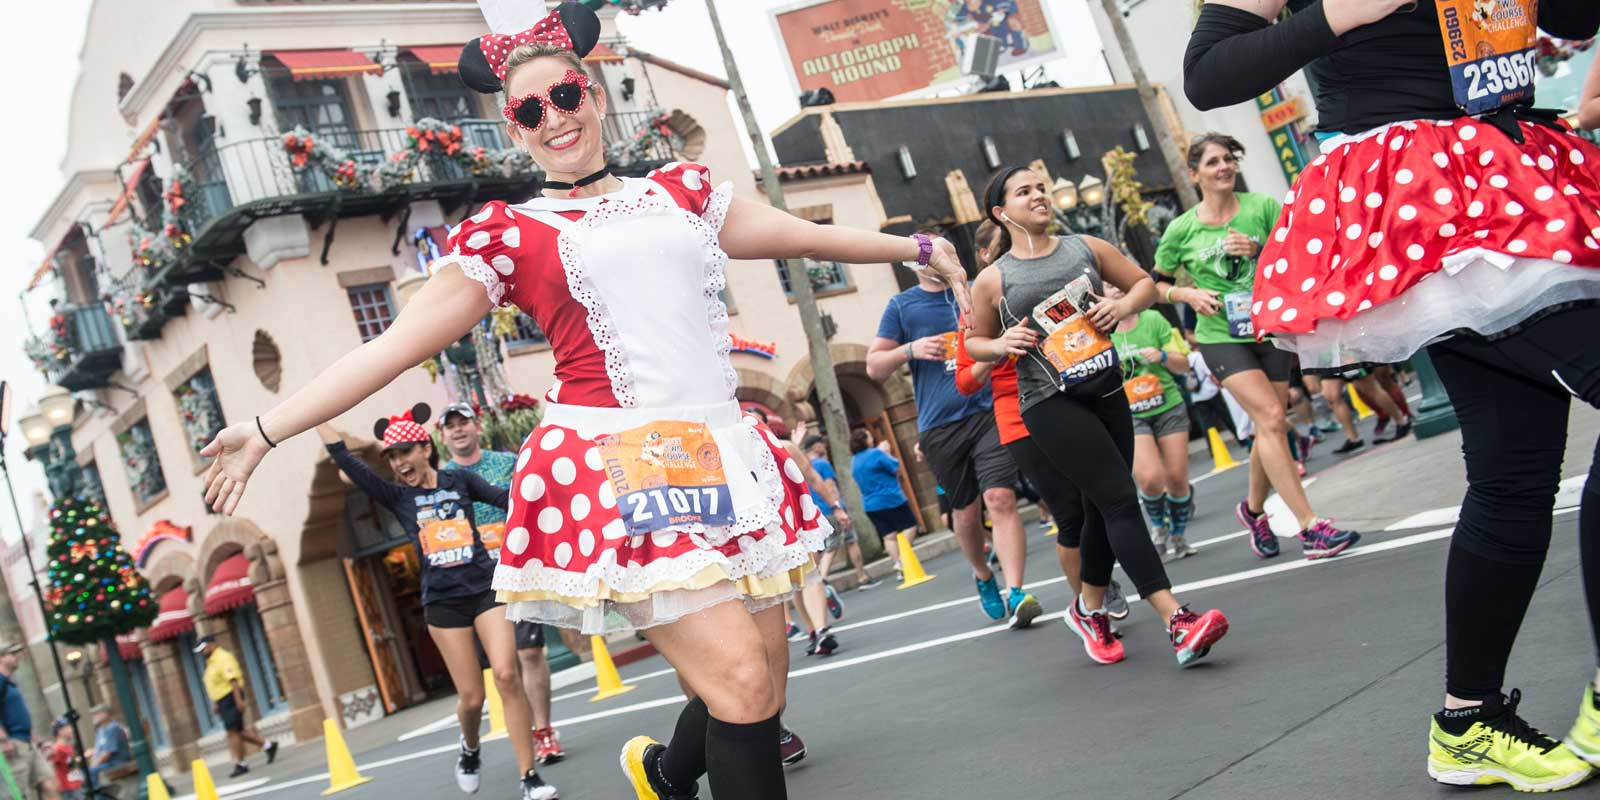 Woman dressed as Minnie Mouse running the Disney Wine and Dine Half Marathon.